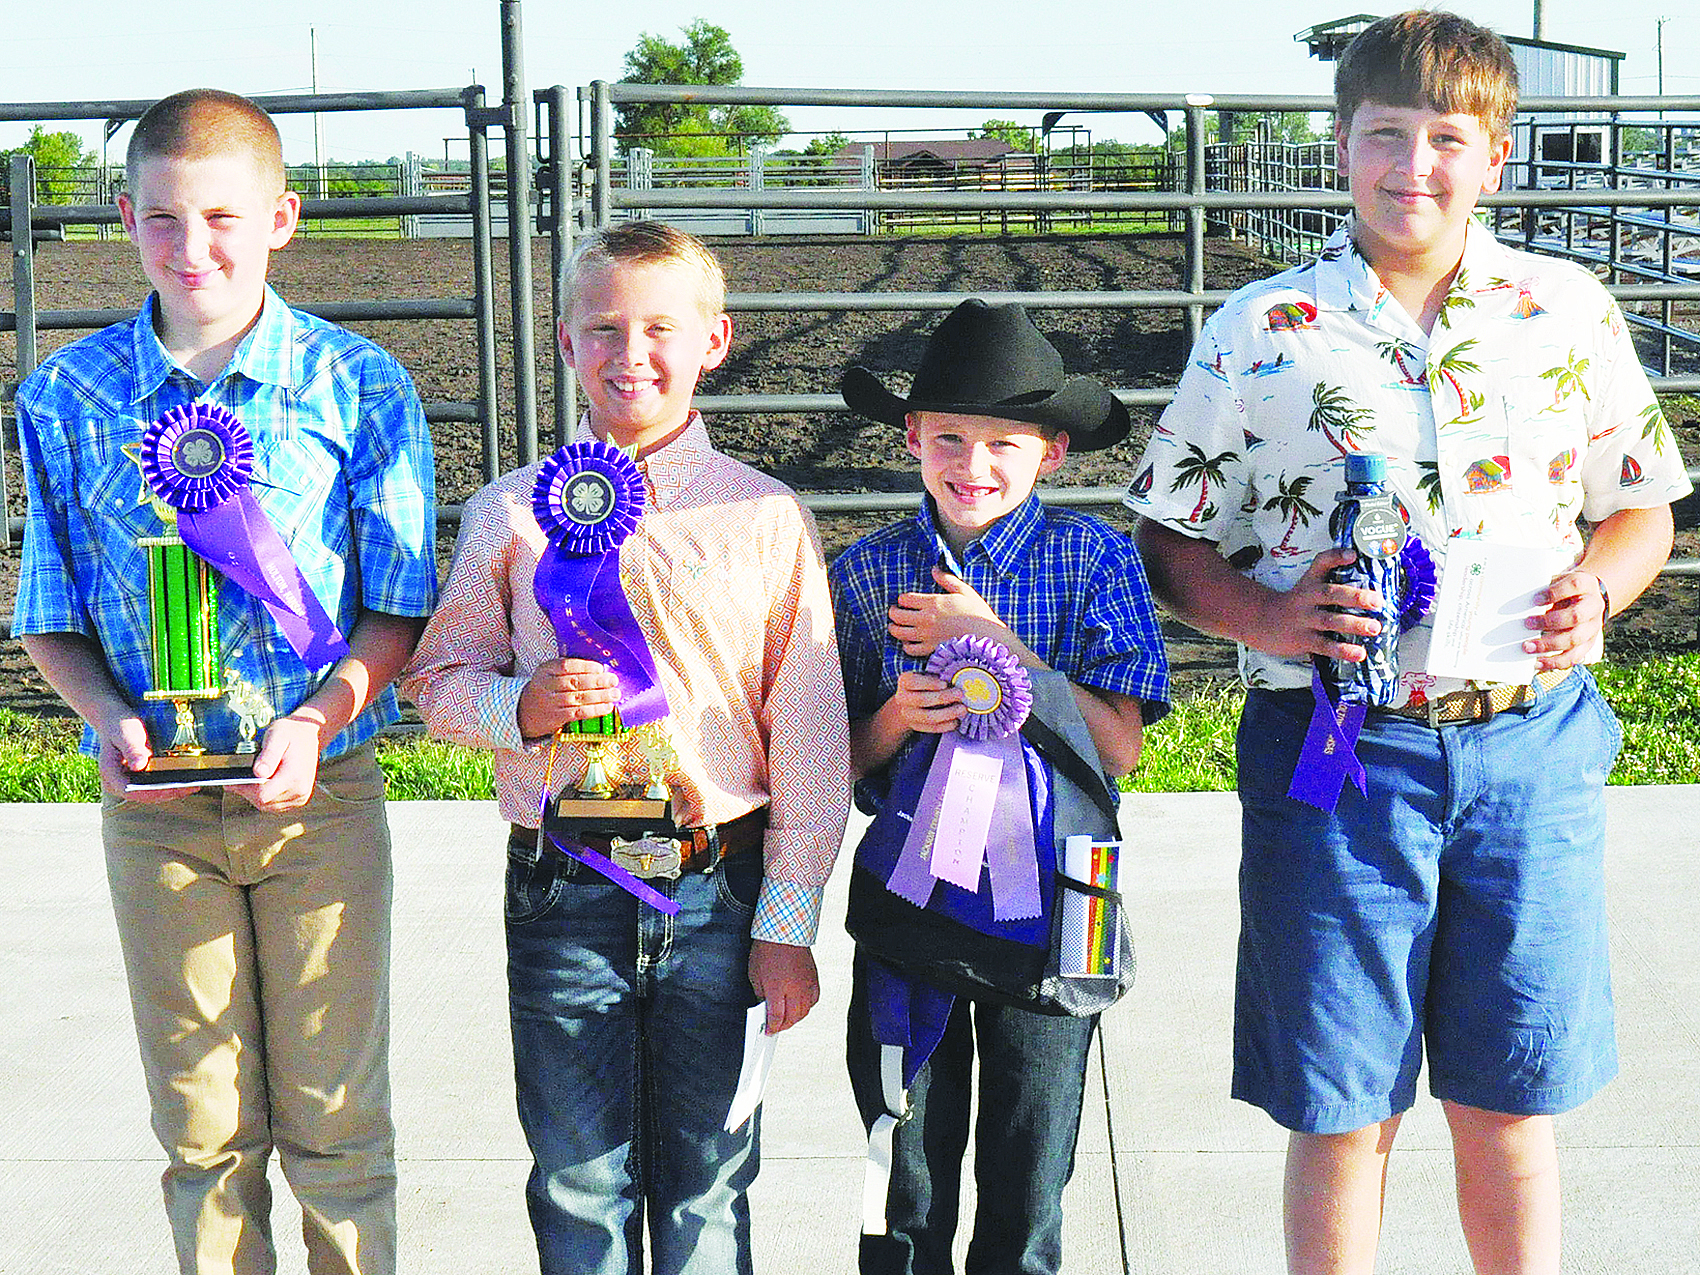 These 4-Hers took top honors in the boys buymanship competition at this year's fashion revue. Winners are shown above and include (from left) Zane Montgomery (intermediate champion), Grady Moss (junior champion), Colt Mattox (junior reserve champion) and Cole Kucan (senior champion). (Photo by Ali Holcomb)